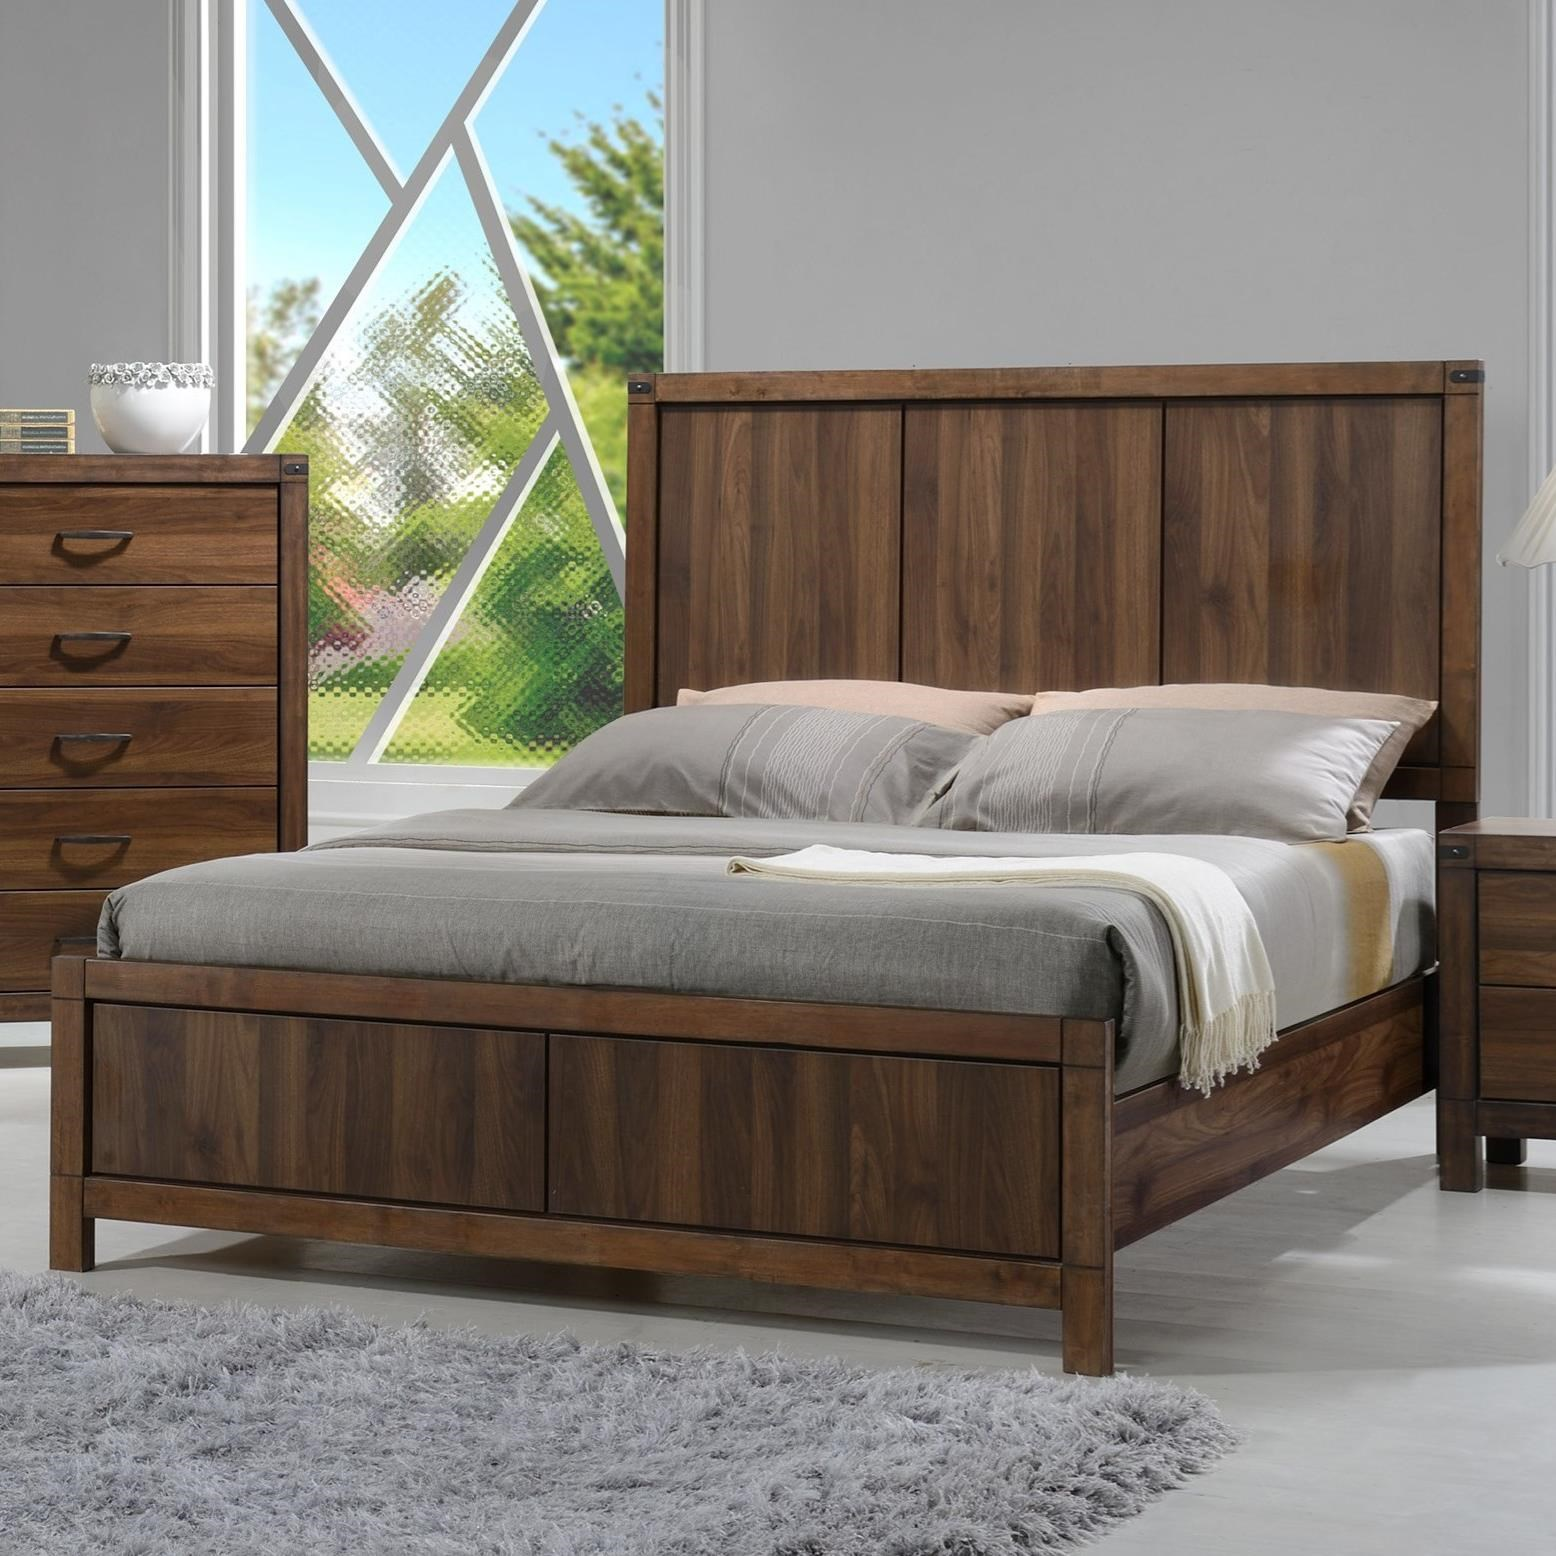 Belmont Queen Headboard and Footboard by Crown Mark at A1 Furniture & Mattress